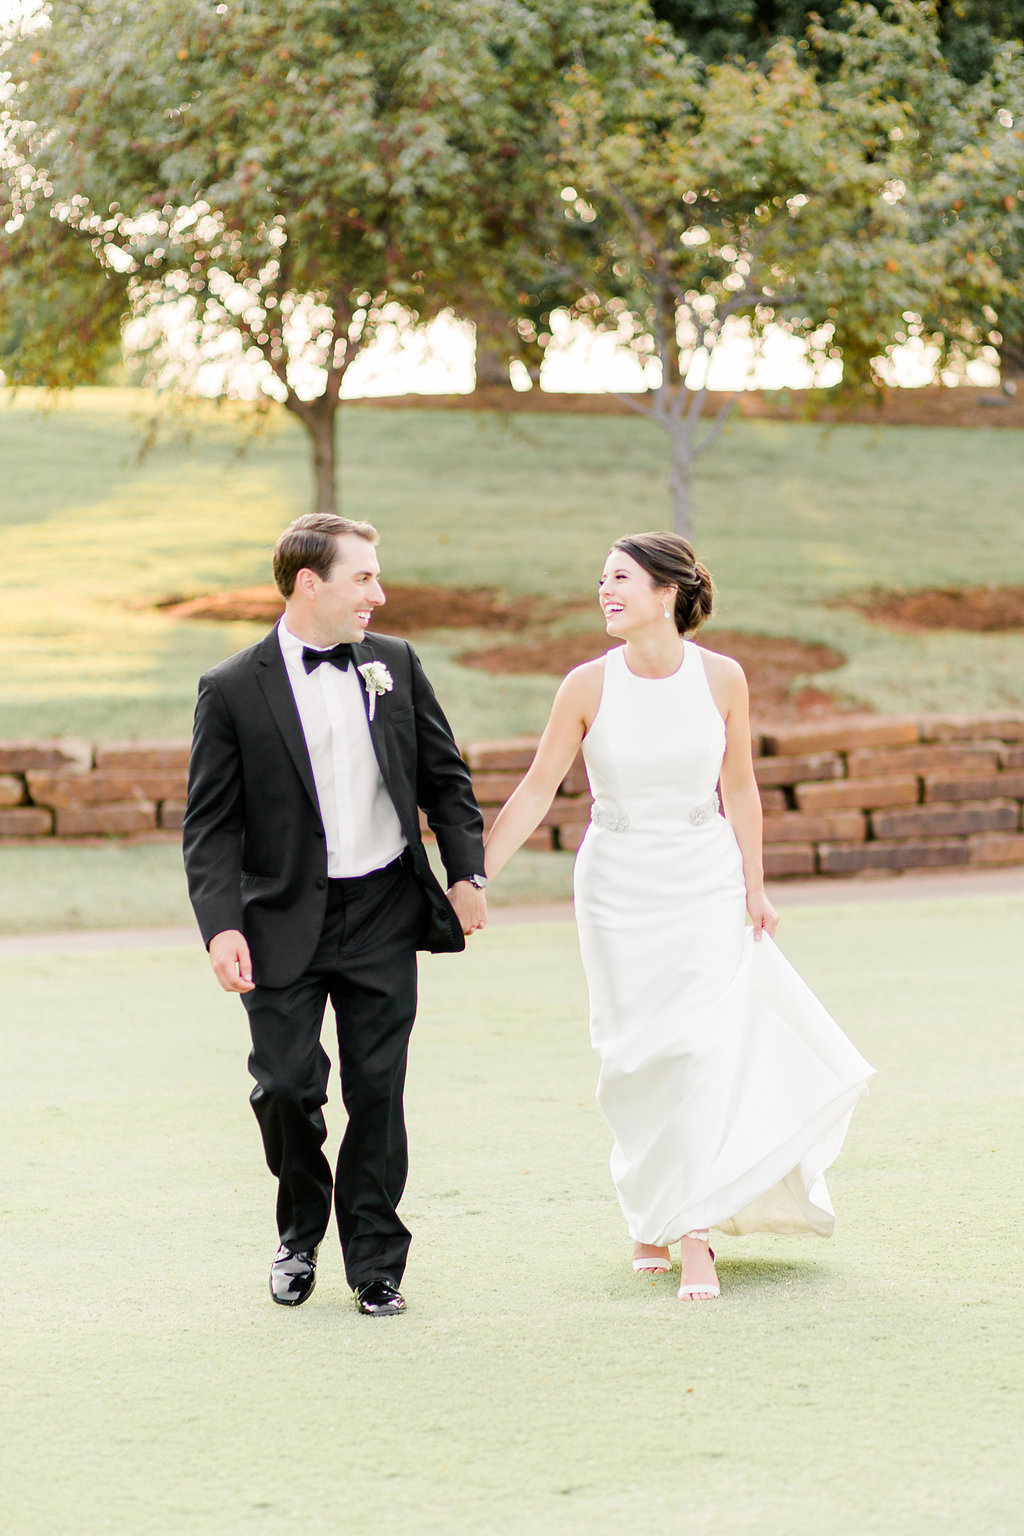 Gallardia-Oklahoma-City-Oklahoma-Wedding-Photographer-Holly-Felts-Photography-Photos-329